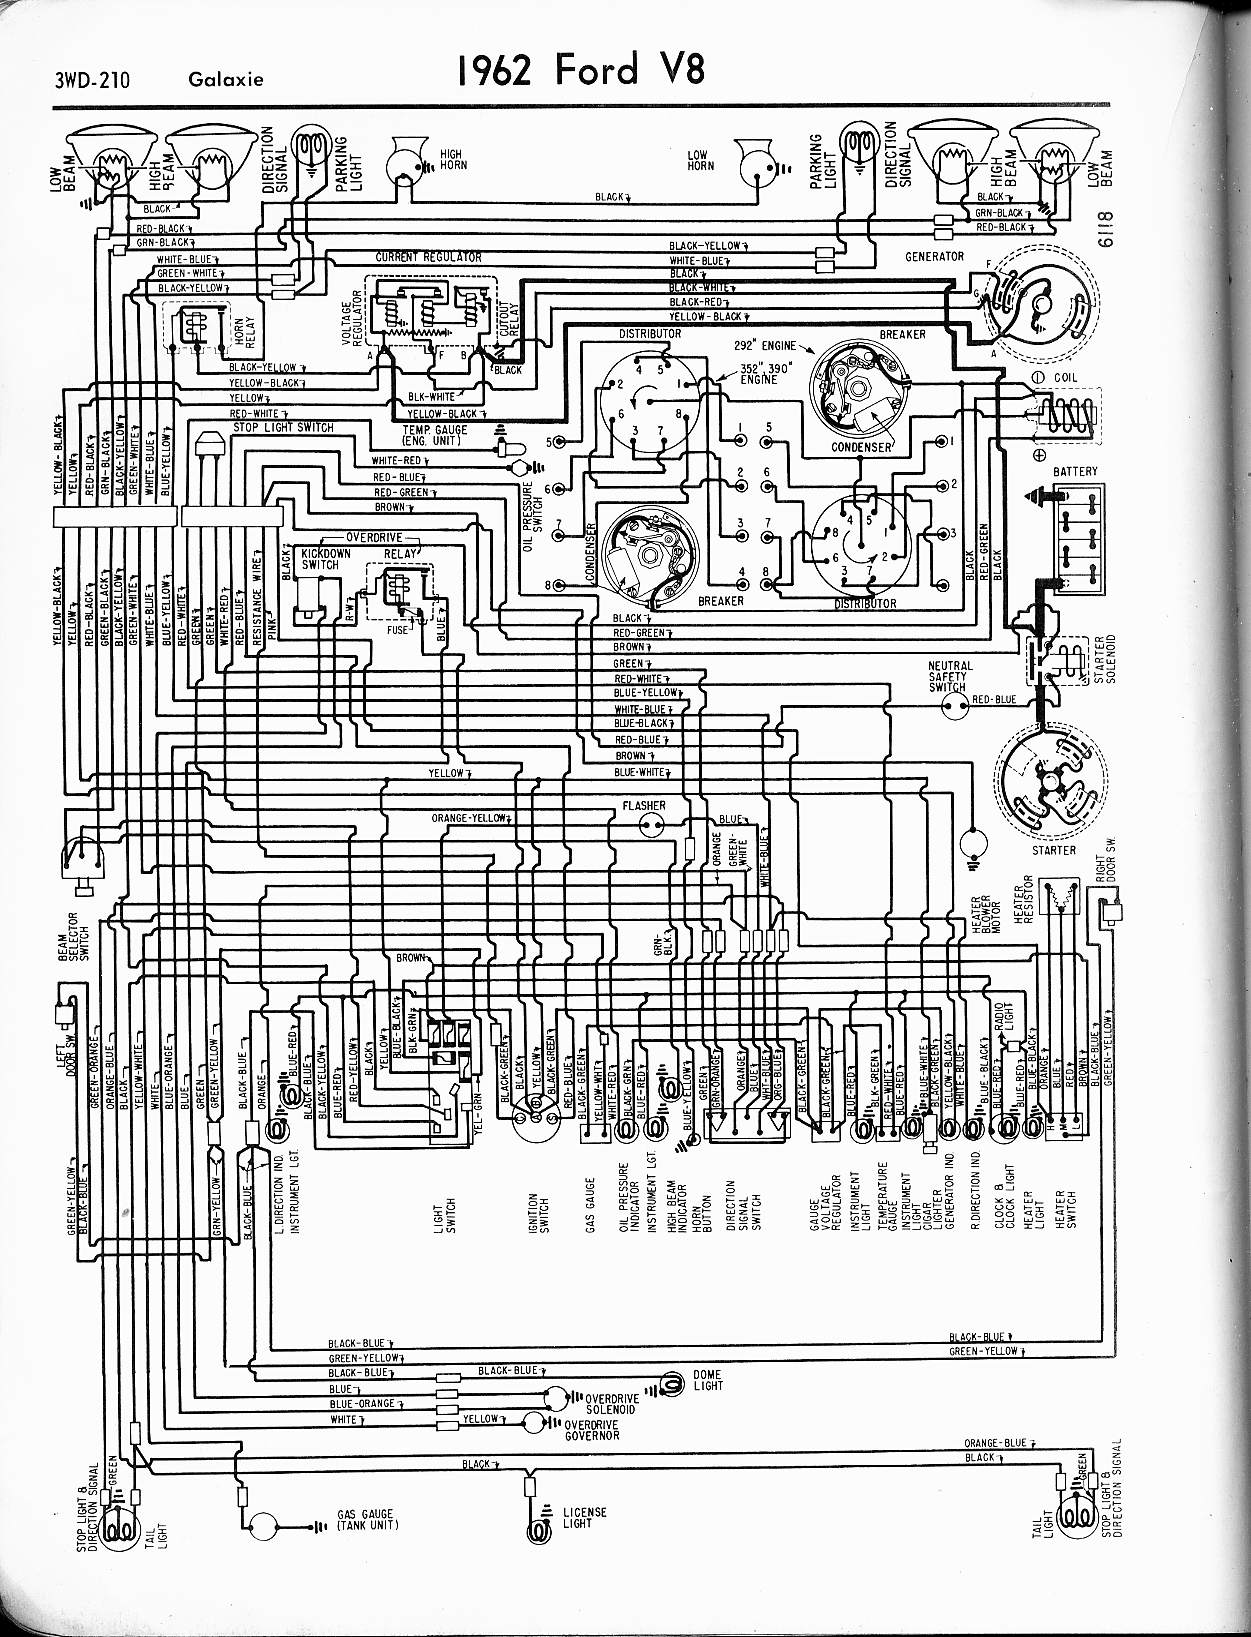 E4E6F Central Locking Wiring Diagram Ford Galaxy | Wiring ResourcesWiring Resources